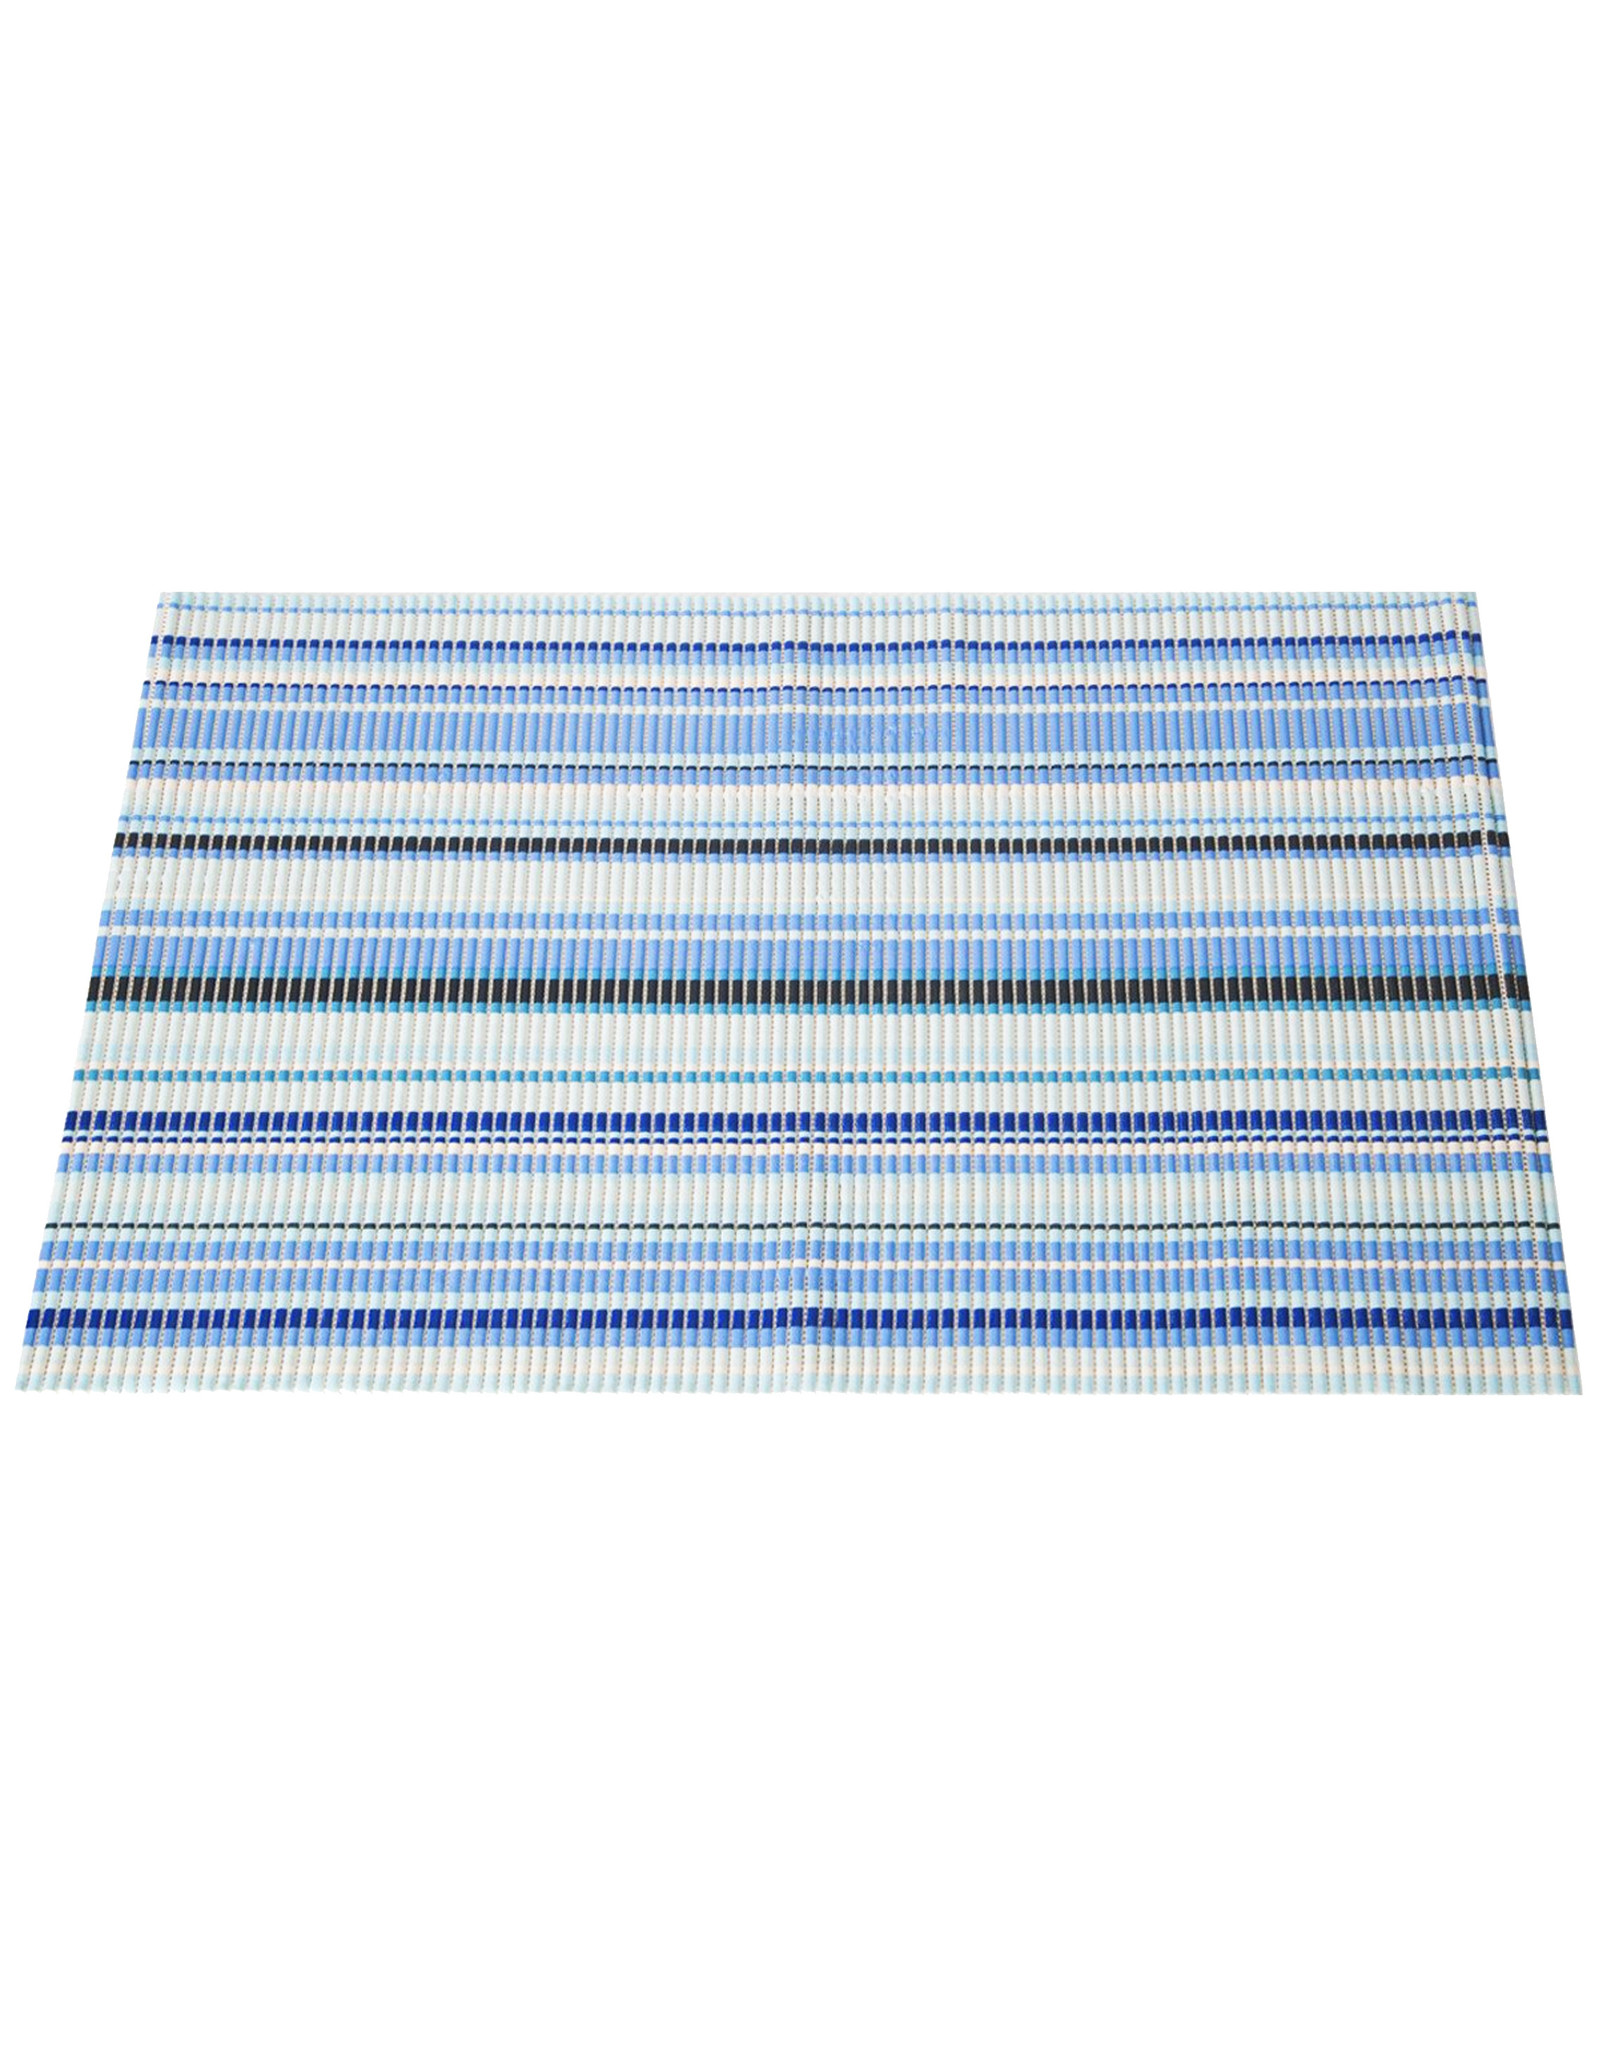 Cats Rule Cats Rule Perfect Litter Mat Caribbean Stripe